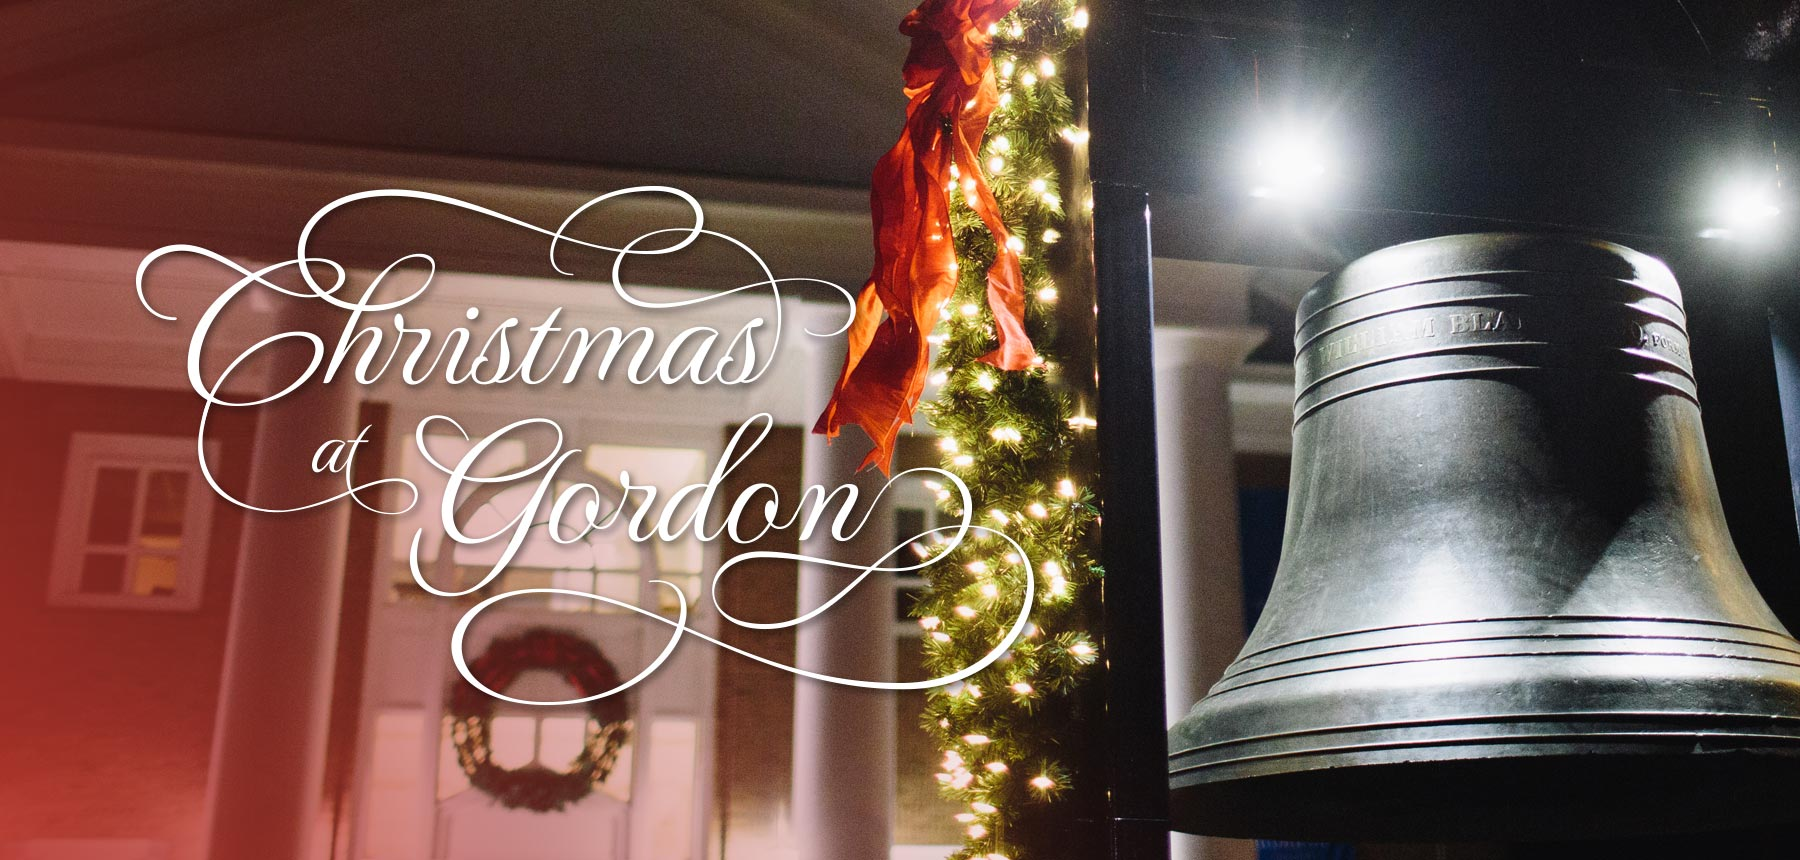 Christmas at Gordon